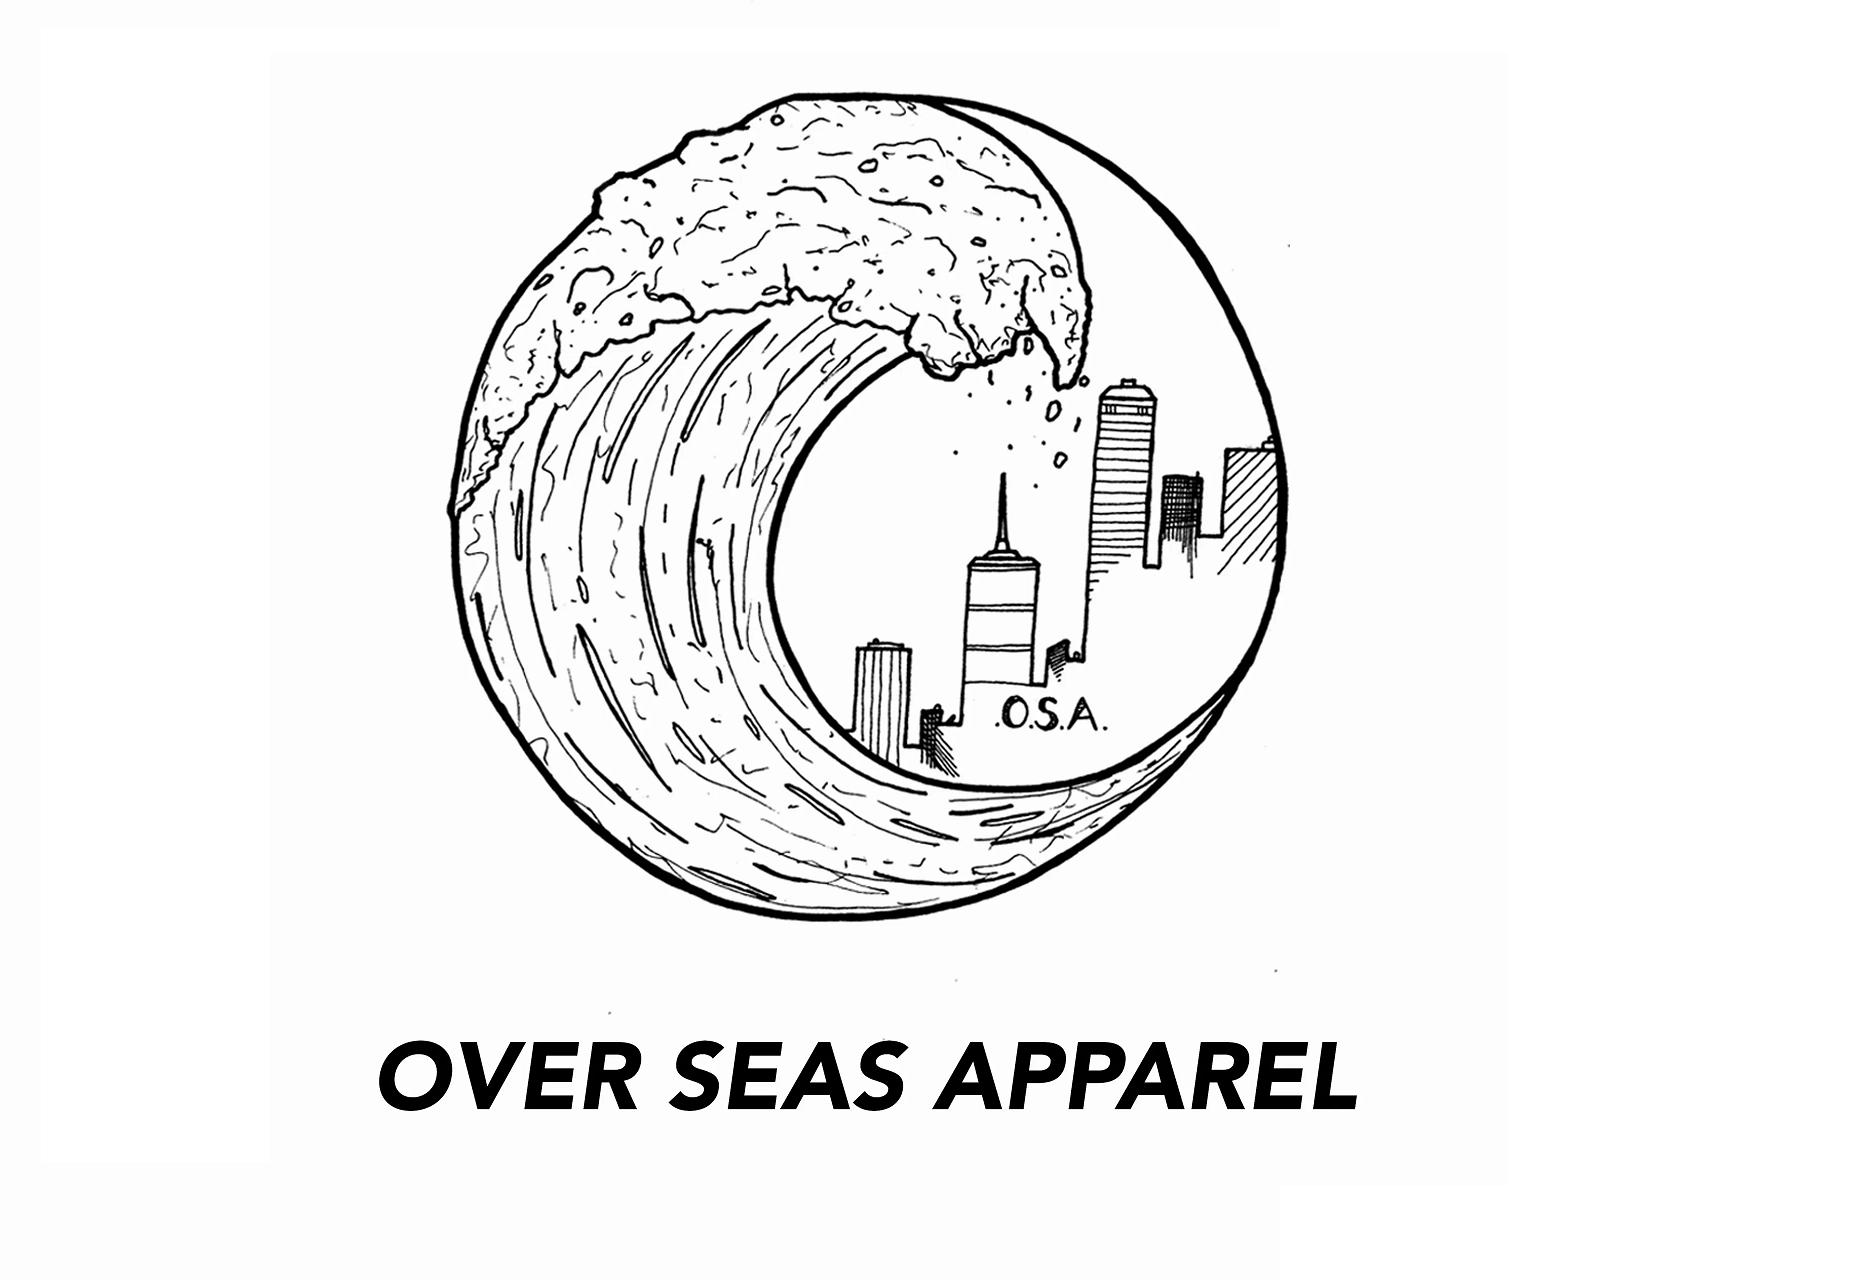 Over Seas Apparel